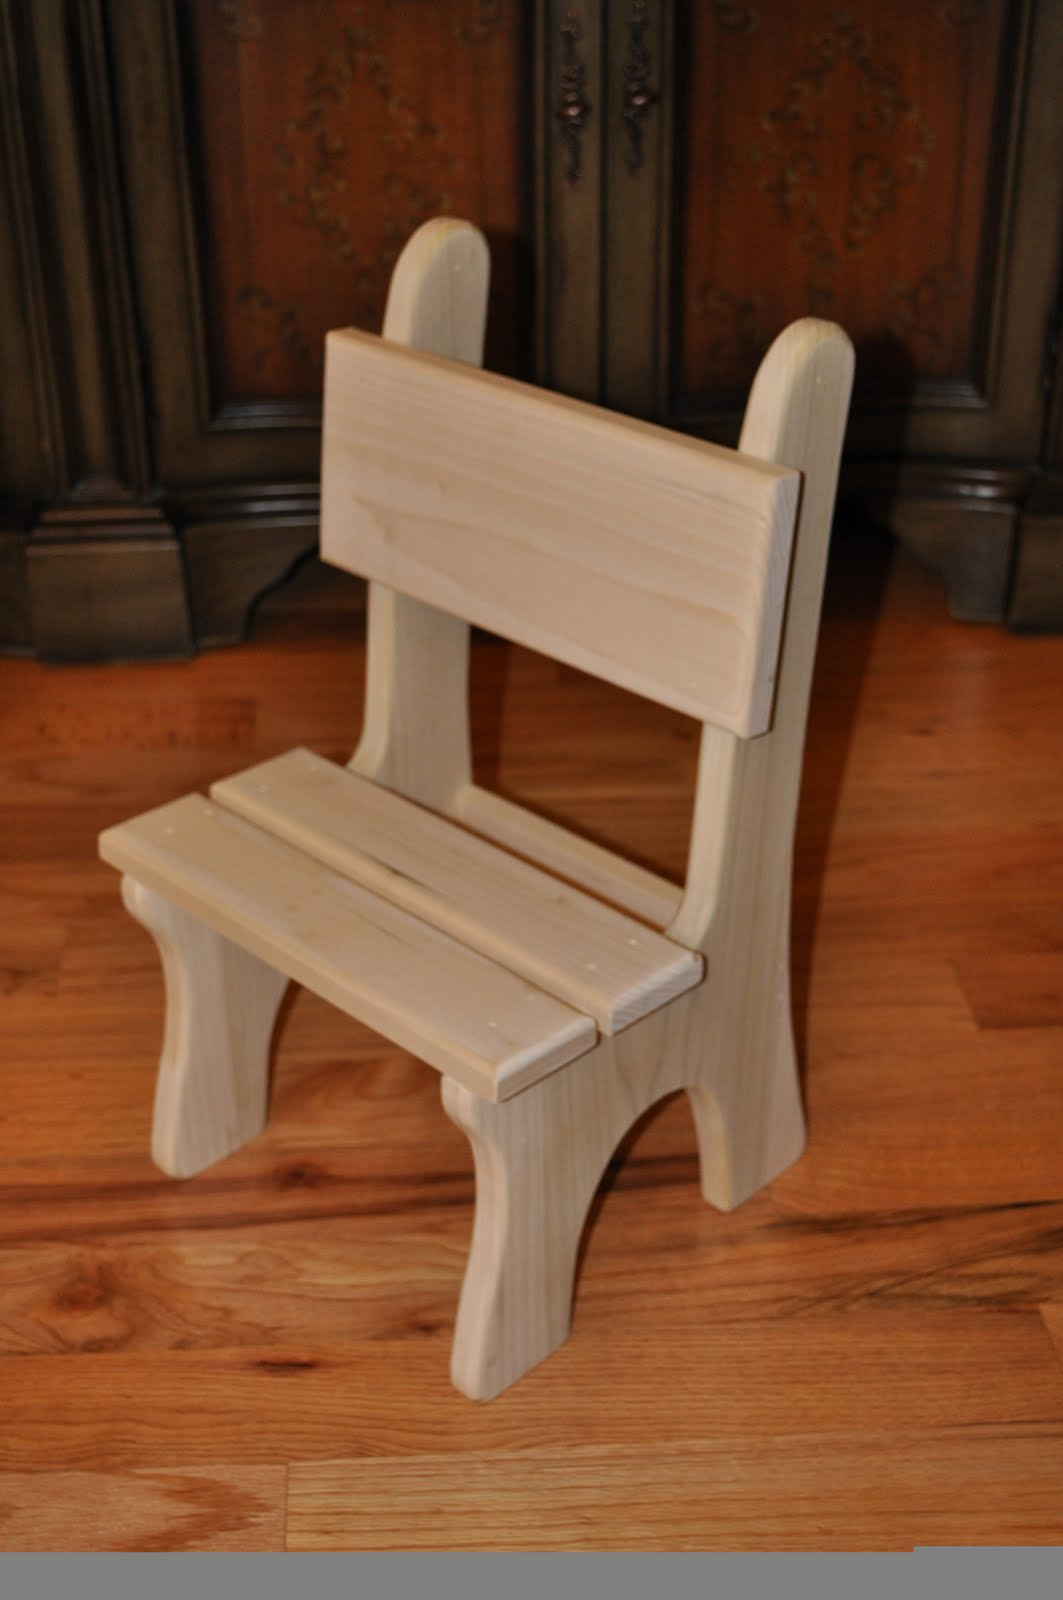 swivel chair amazon game table and chairs woodwork handmade wooden pdf plans